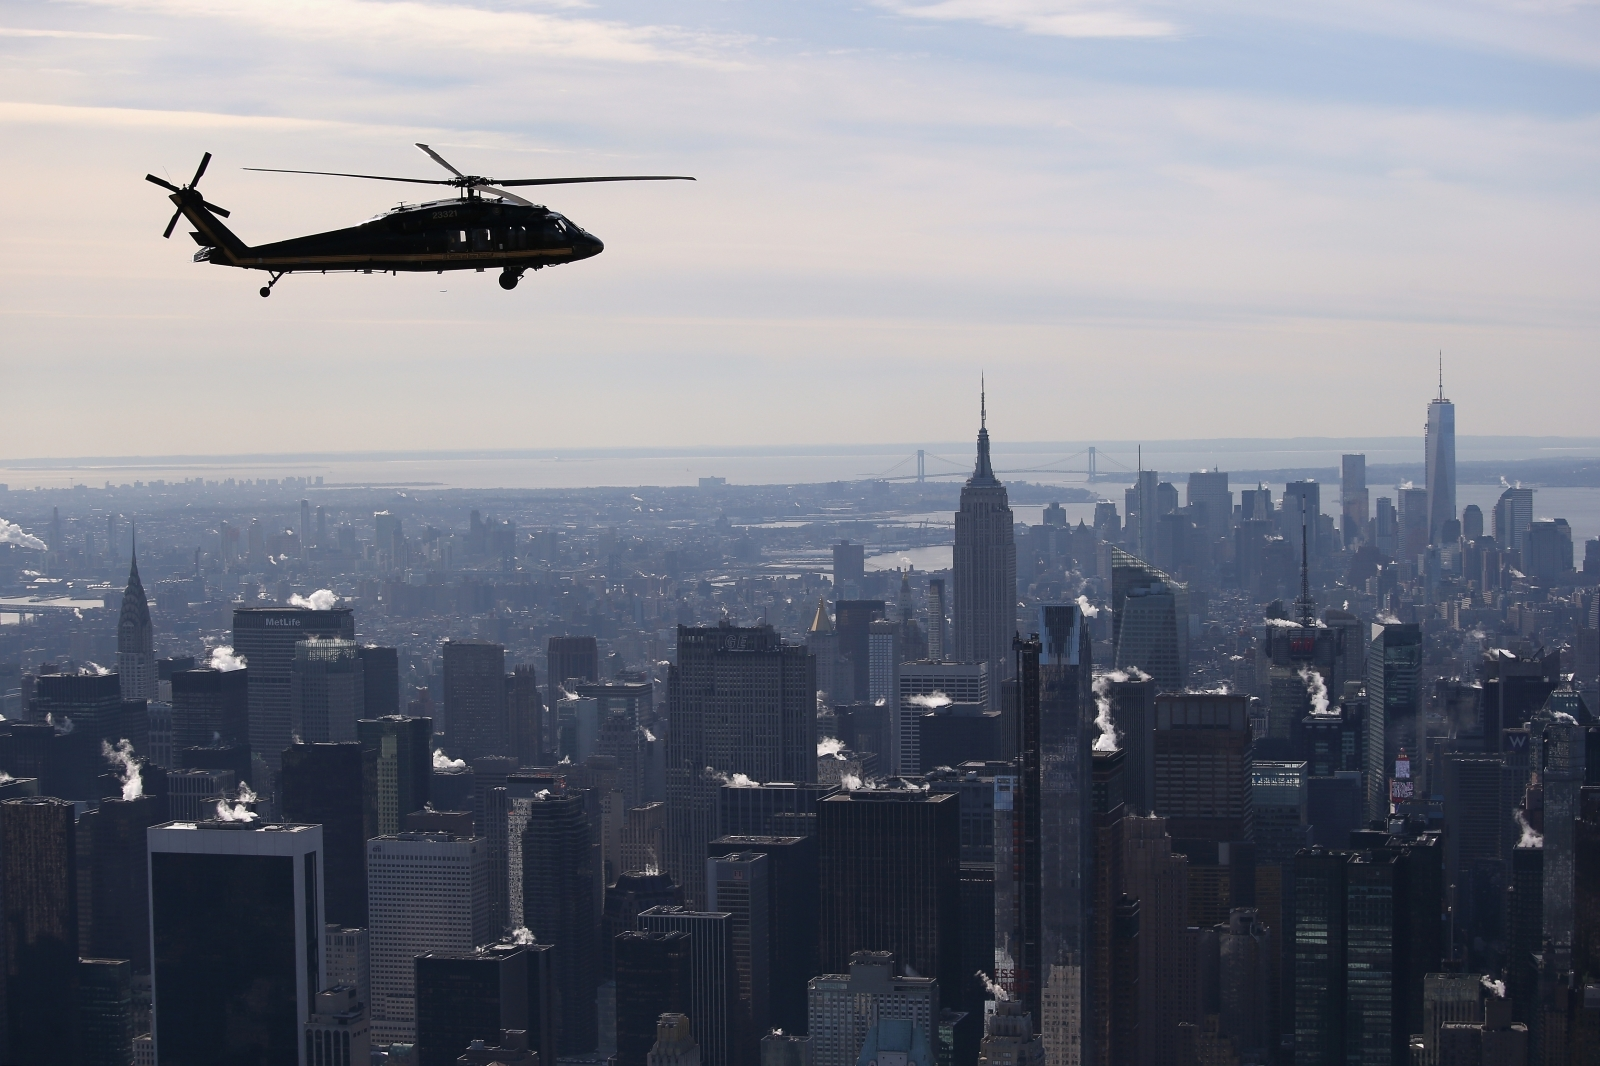 Drone Almost Causes Catastrophic Incident By Crashing Into Military Helicopter Over New York City